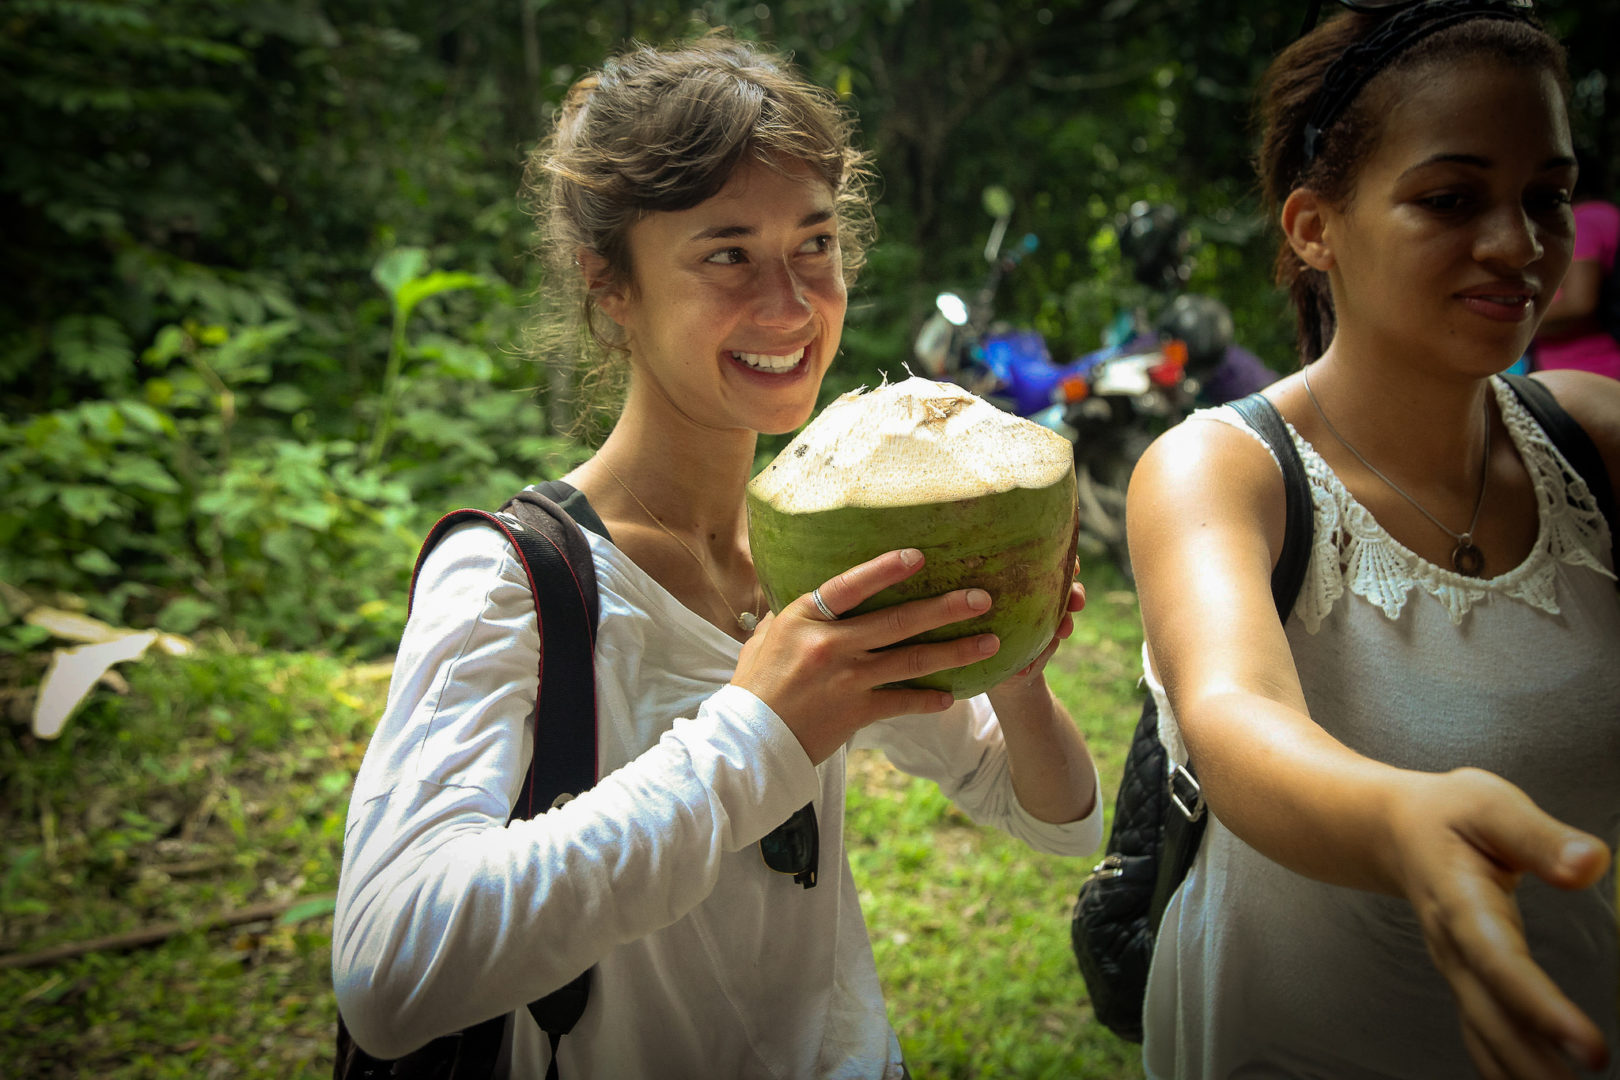 It doesn't get much more refreshing than a fresh coconut